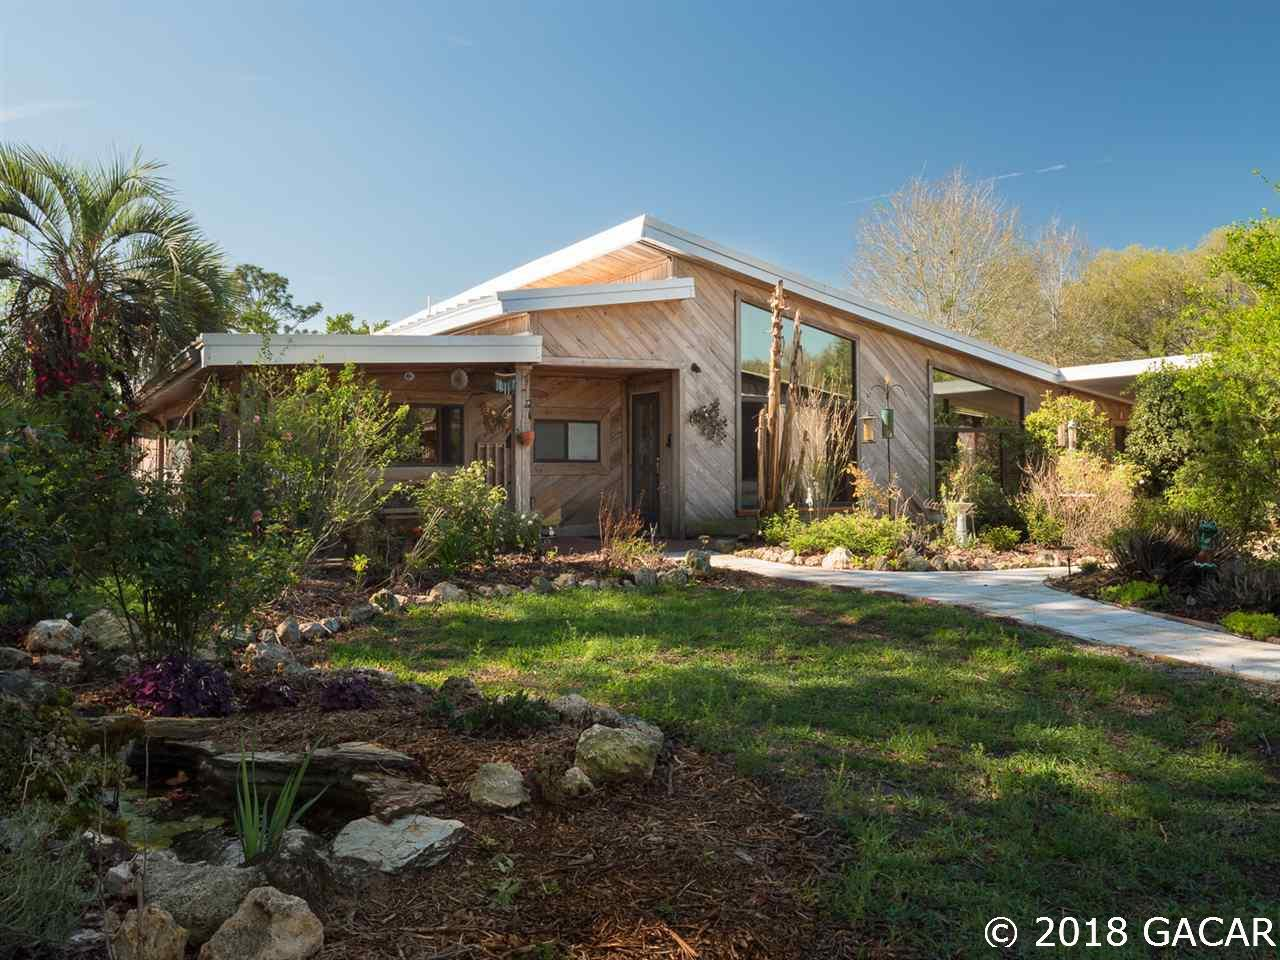 Water softener homes for sale in newberry real estate in for Florida modern homes